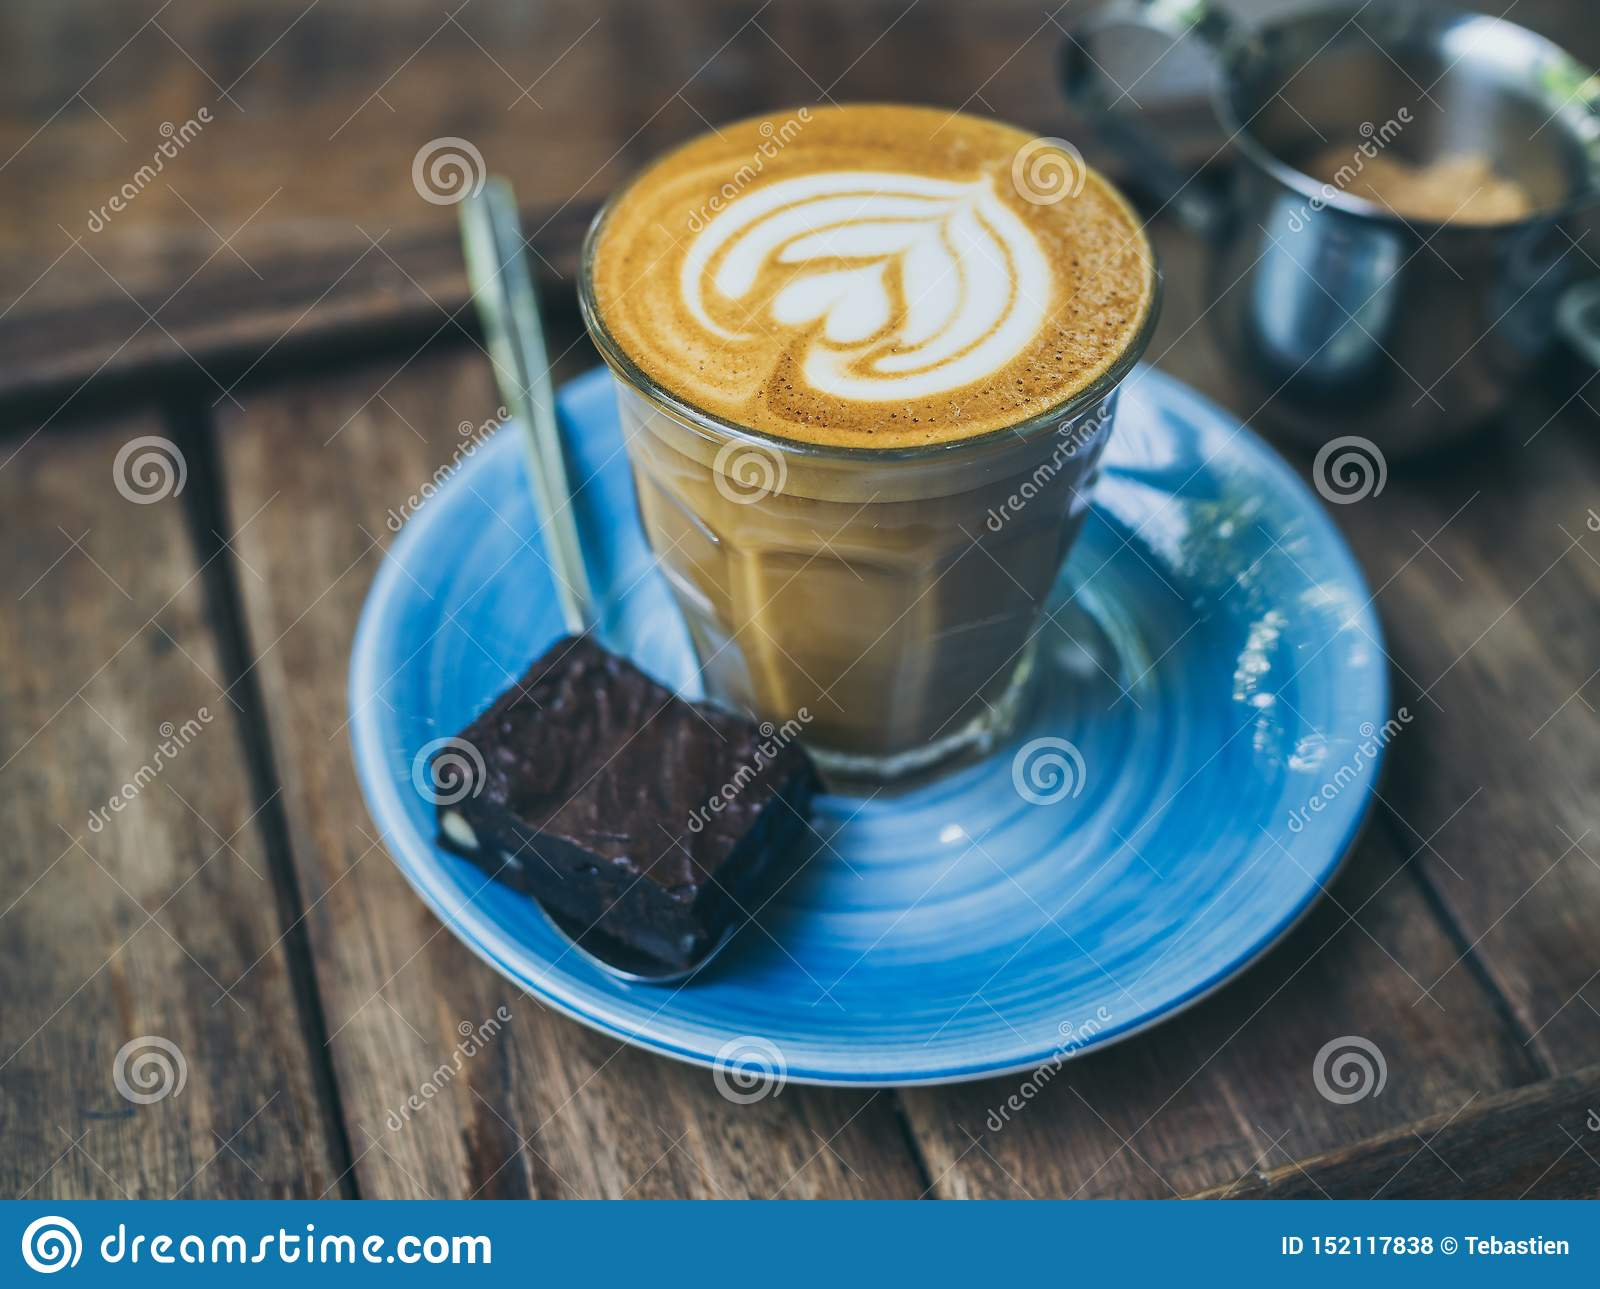 Piccolo Latte Coffee Topping With Flower Art From Milk In Small Glass With A Piece Of Homemade Brownies Cake On Blue Ceramic Plate Stock Photo Image Of Beverage Black 152117838